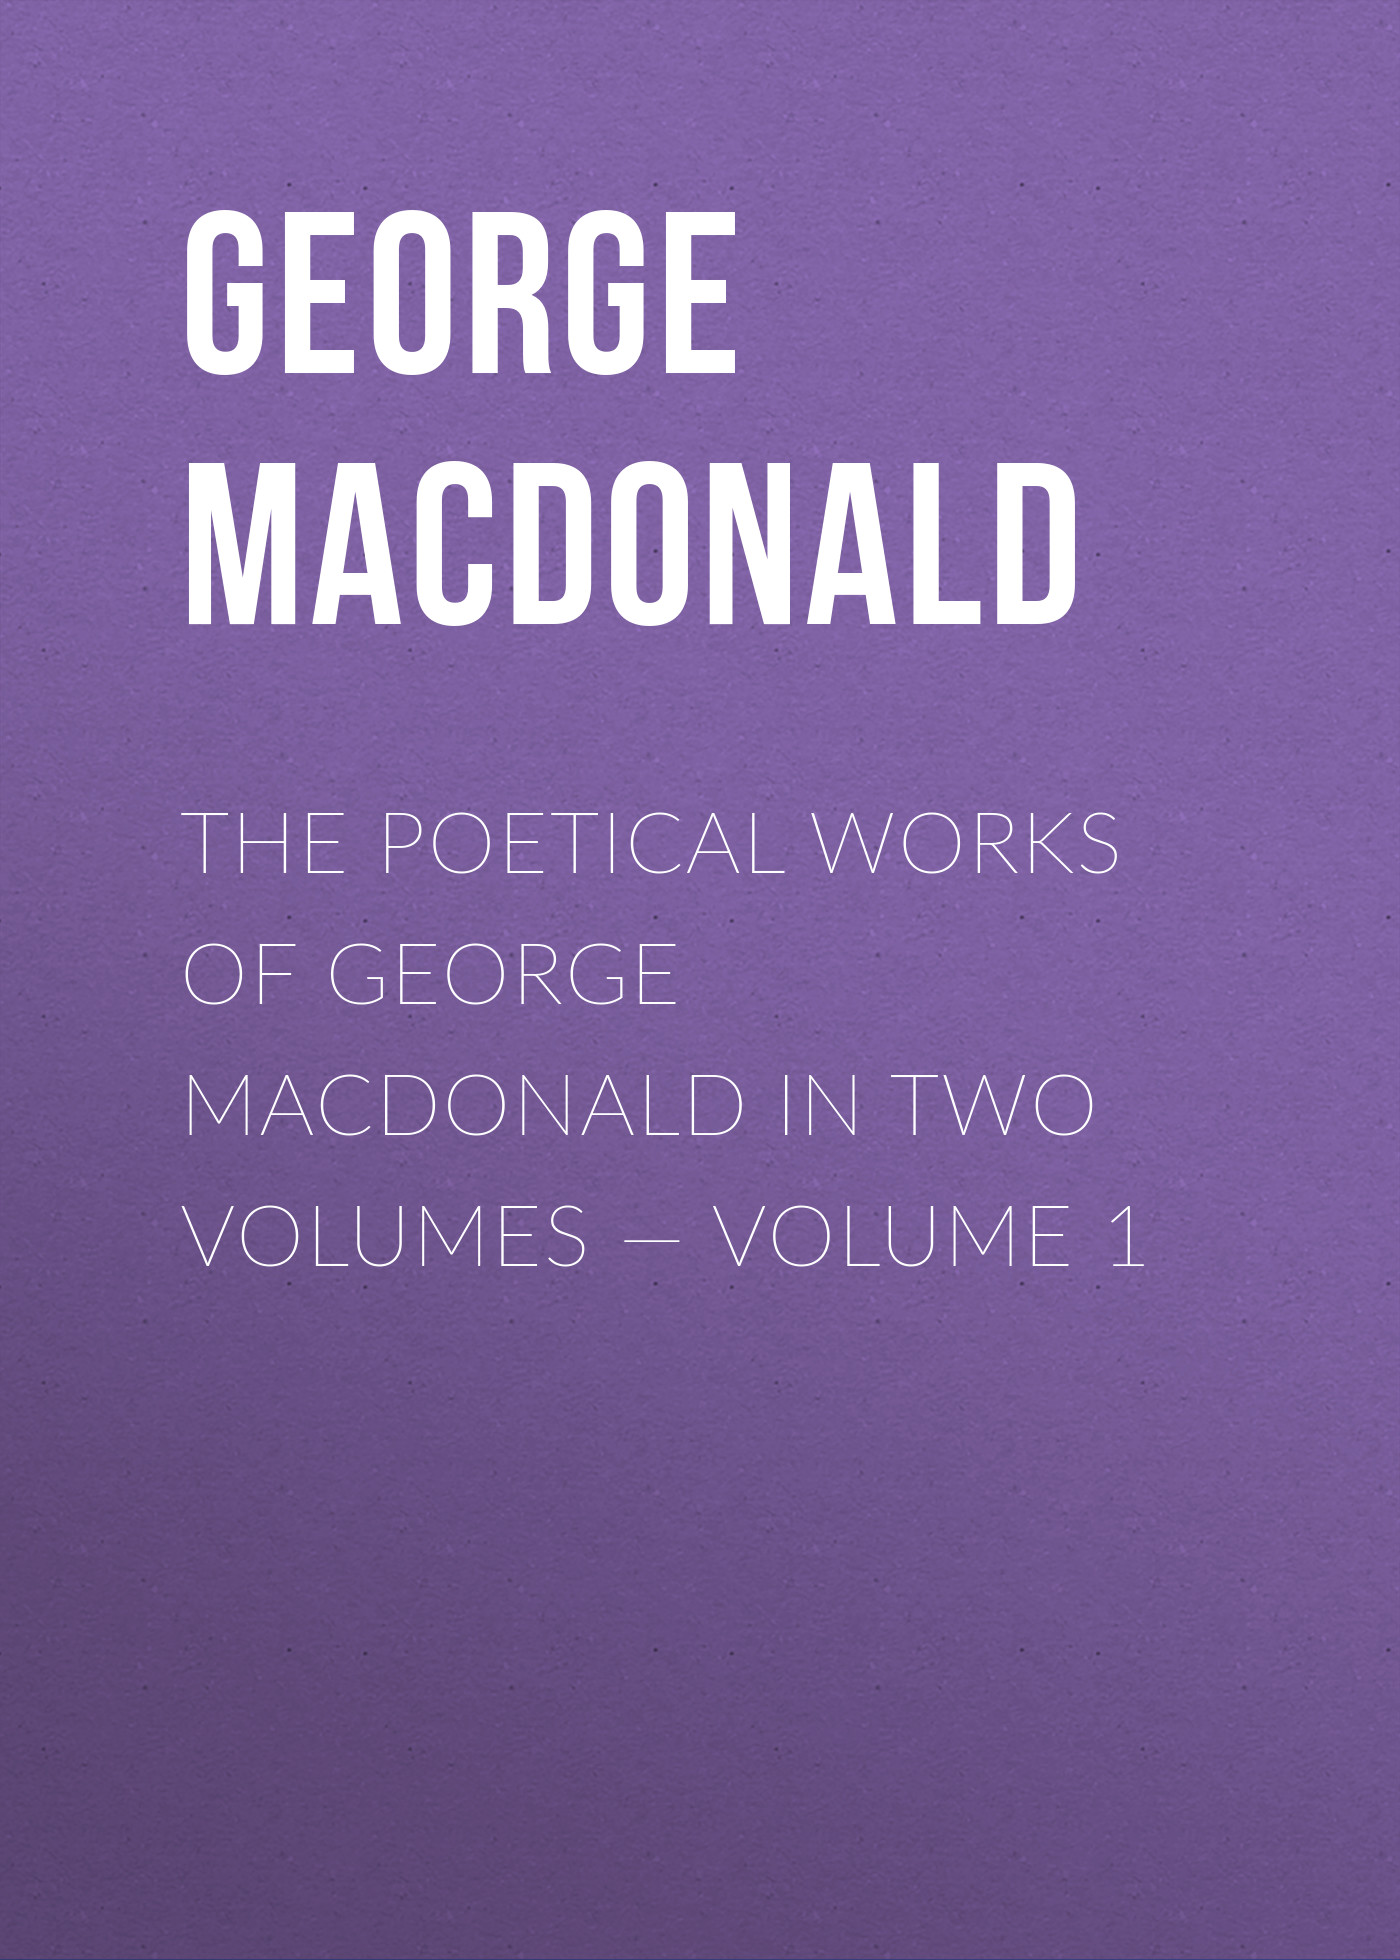 George MacDonald The poetical works of George MacDonald in two volumes — Volume 1 george macdonald the seaboard parish volume 1